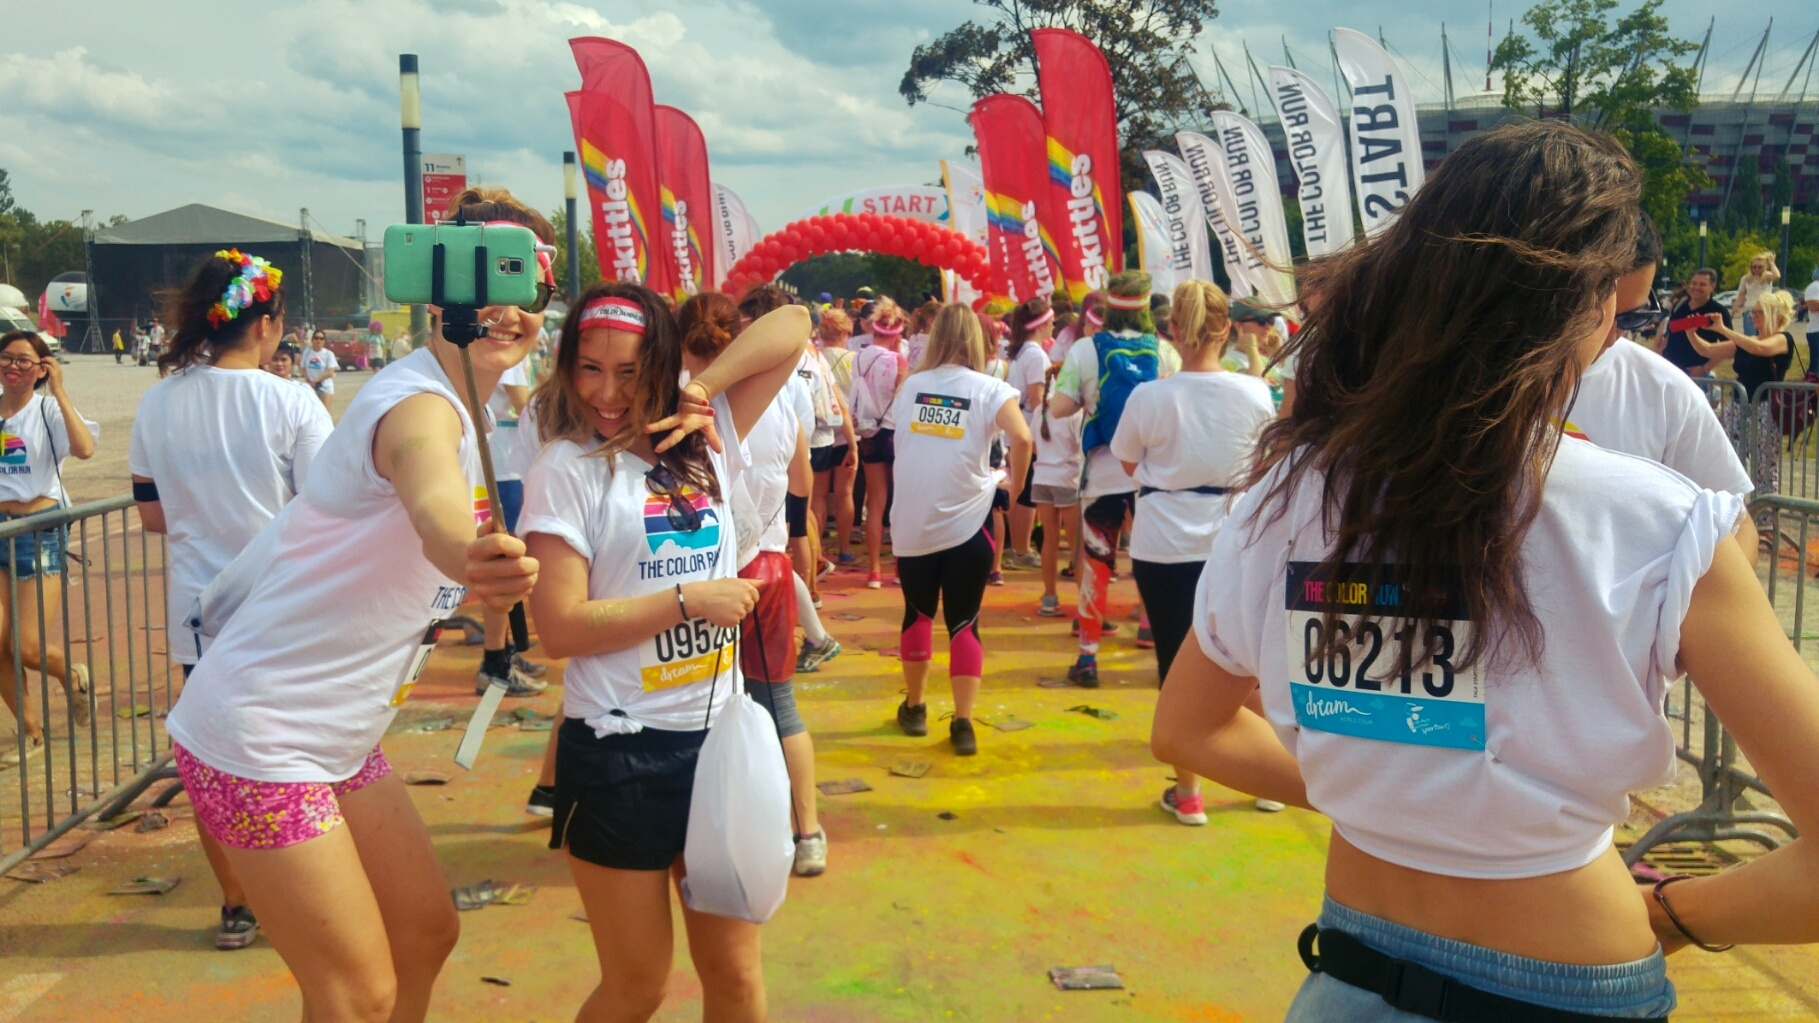 The Color Run - strefa startu